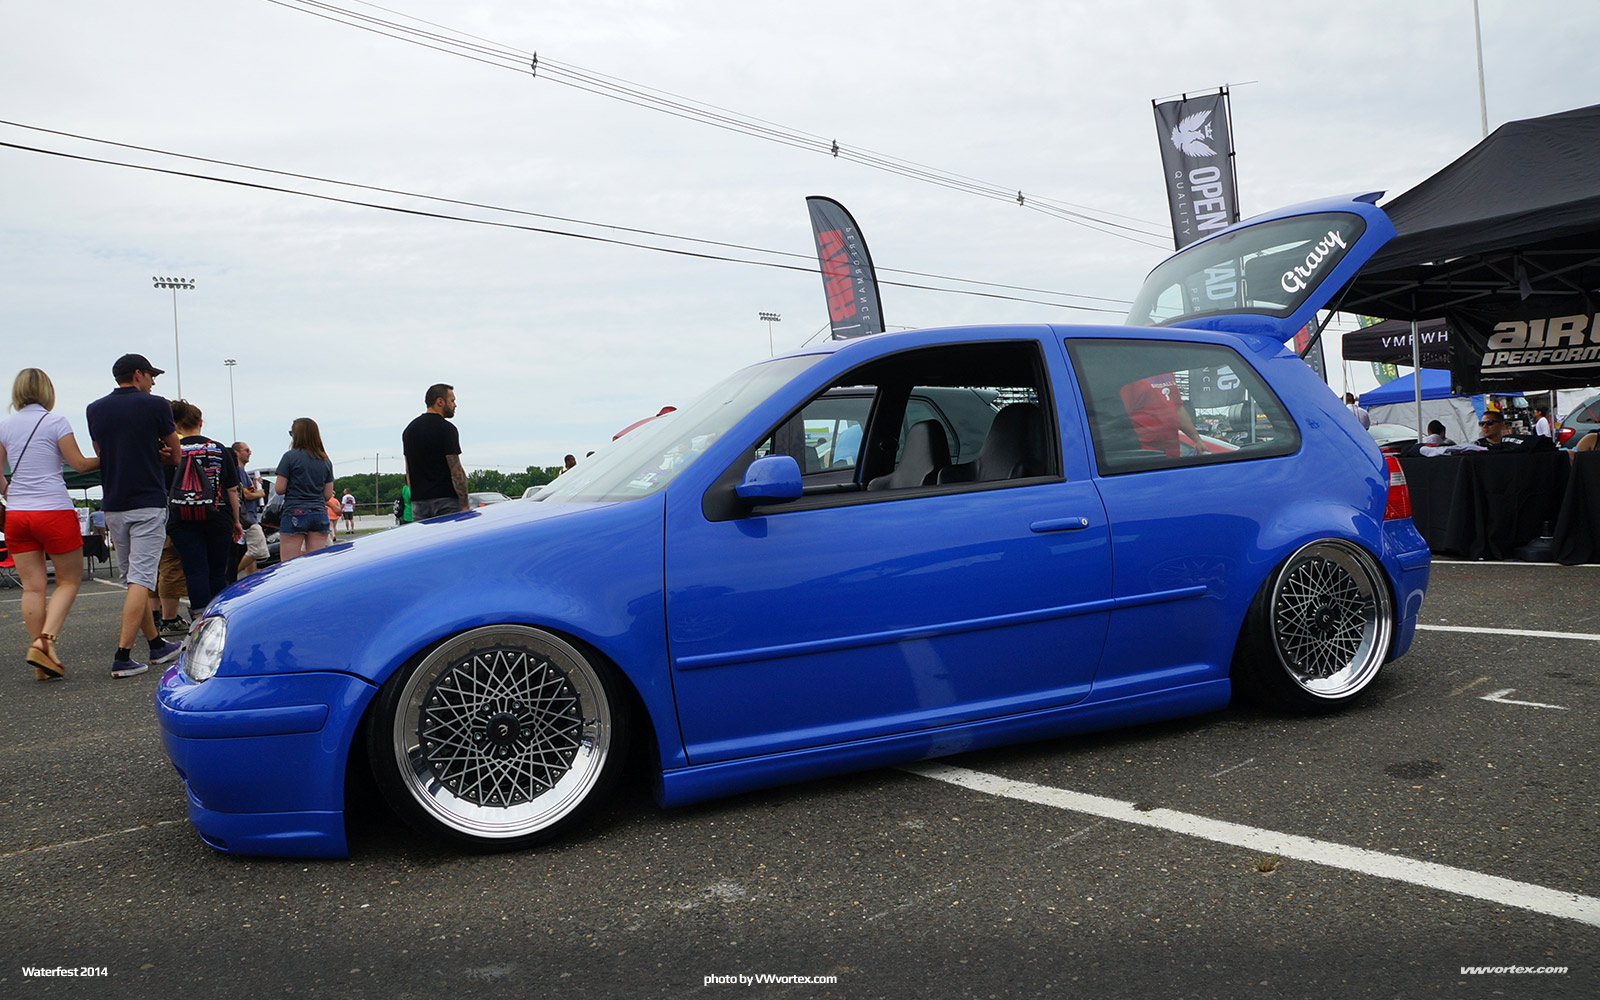 2014-waterfest-vw-audi-1208